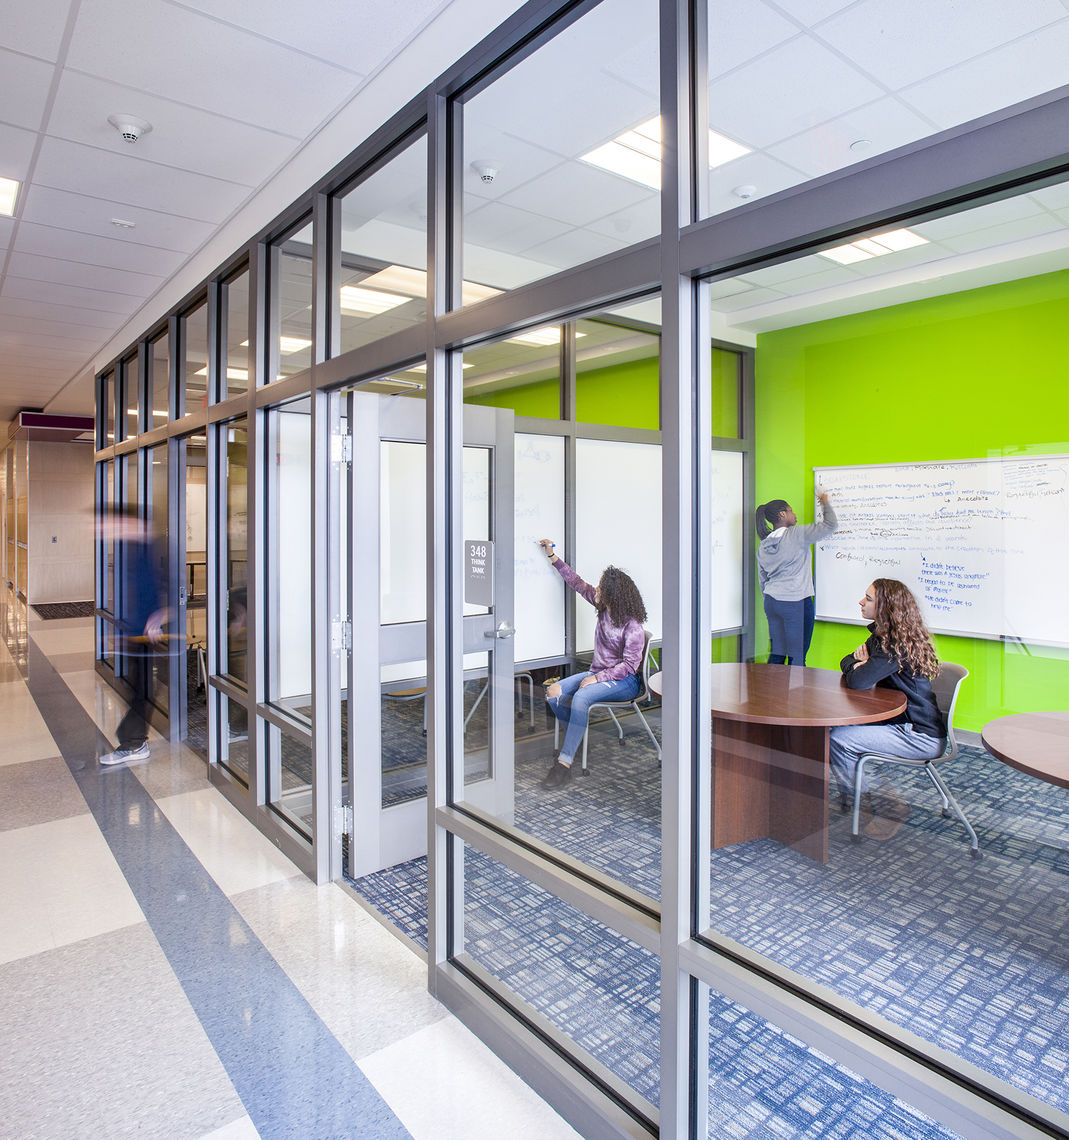 Think Tanks: Enclosed, but still visible spaces that support mixed-learning between departments, small group discussions, and group work.  Located in the academic corridors, these spaces are open to all departments and can accommodate up to 8 people.